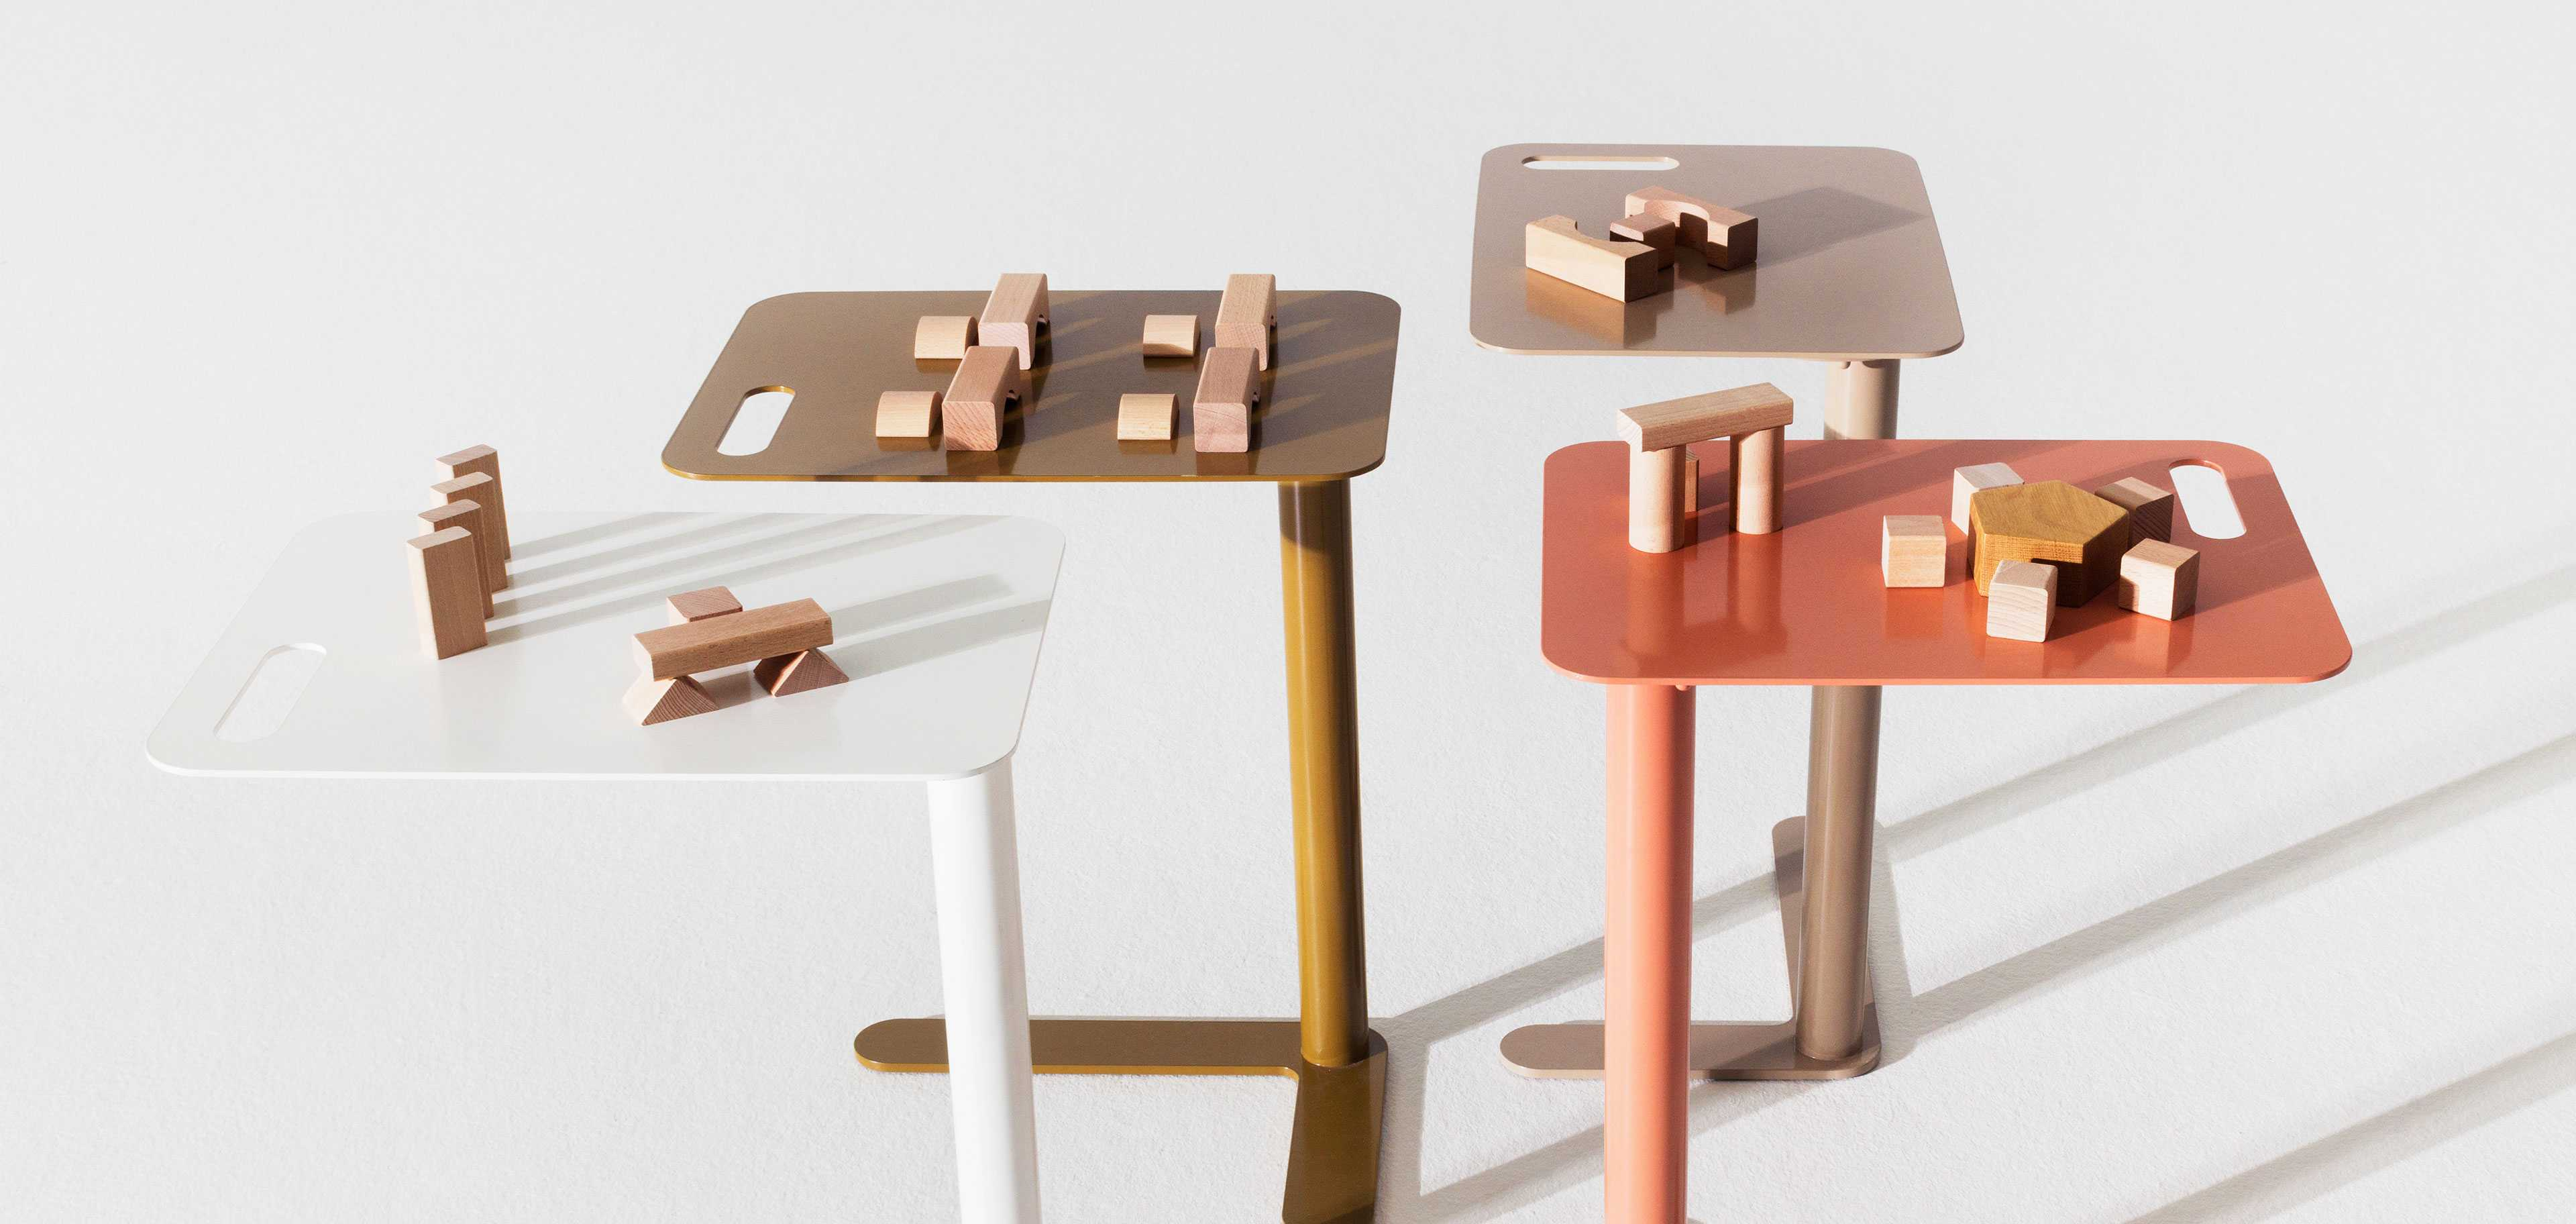 Wooden blocks on Trailer tables